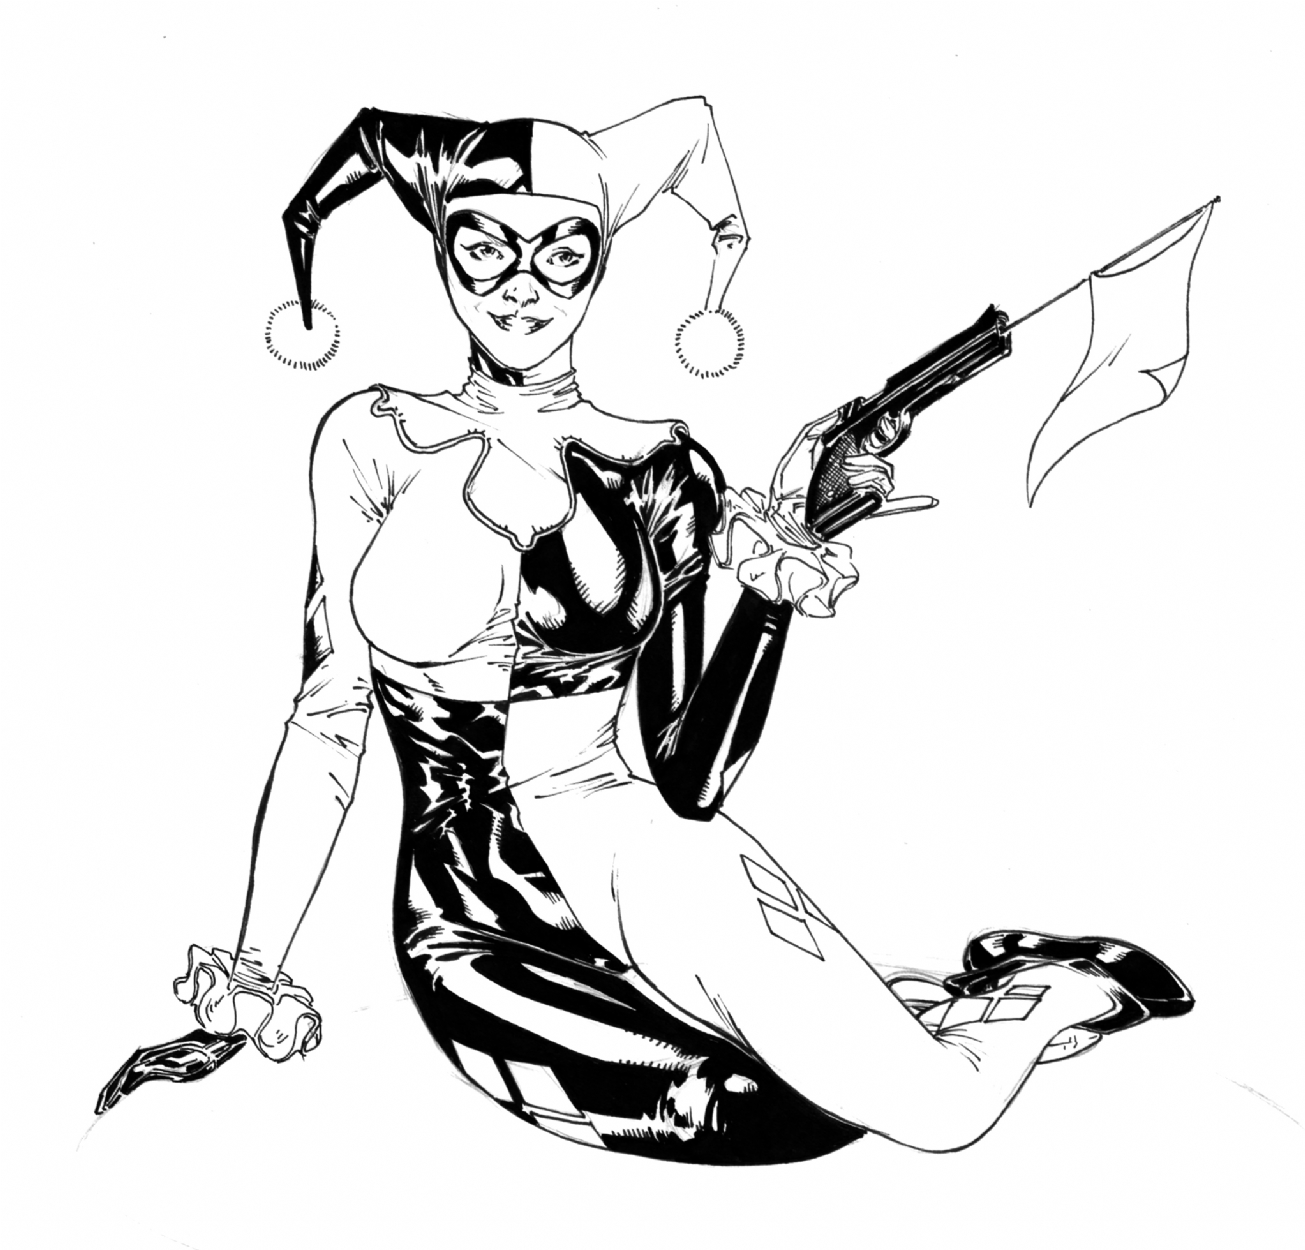 Harley Quinn, in Spider Guile's Commissions and other